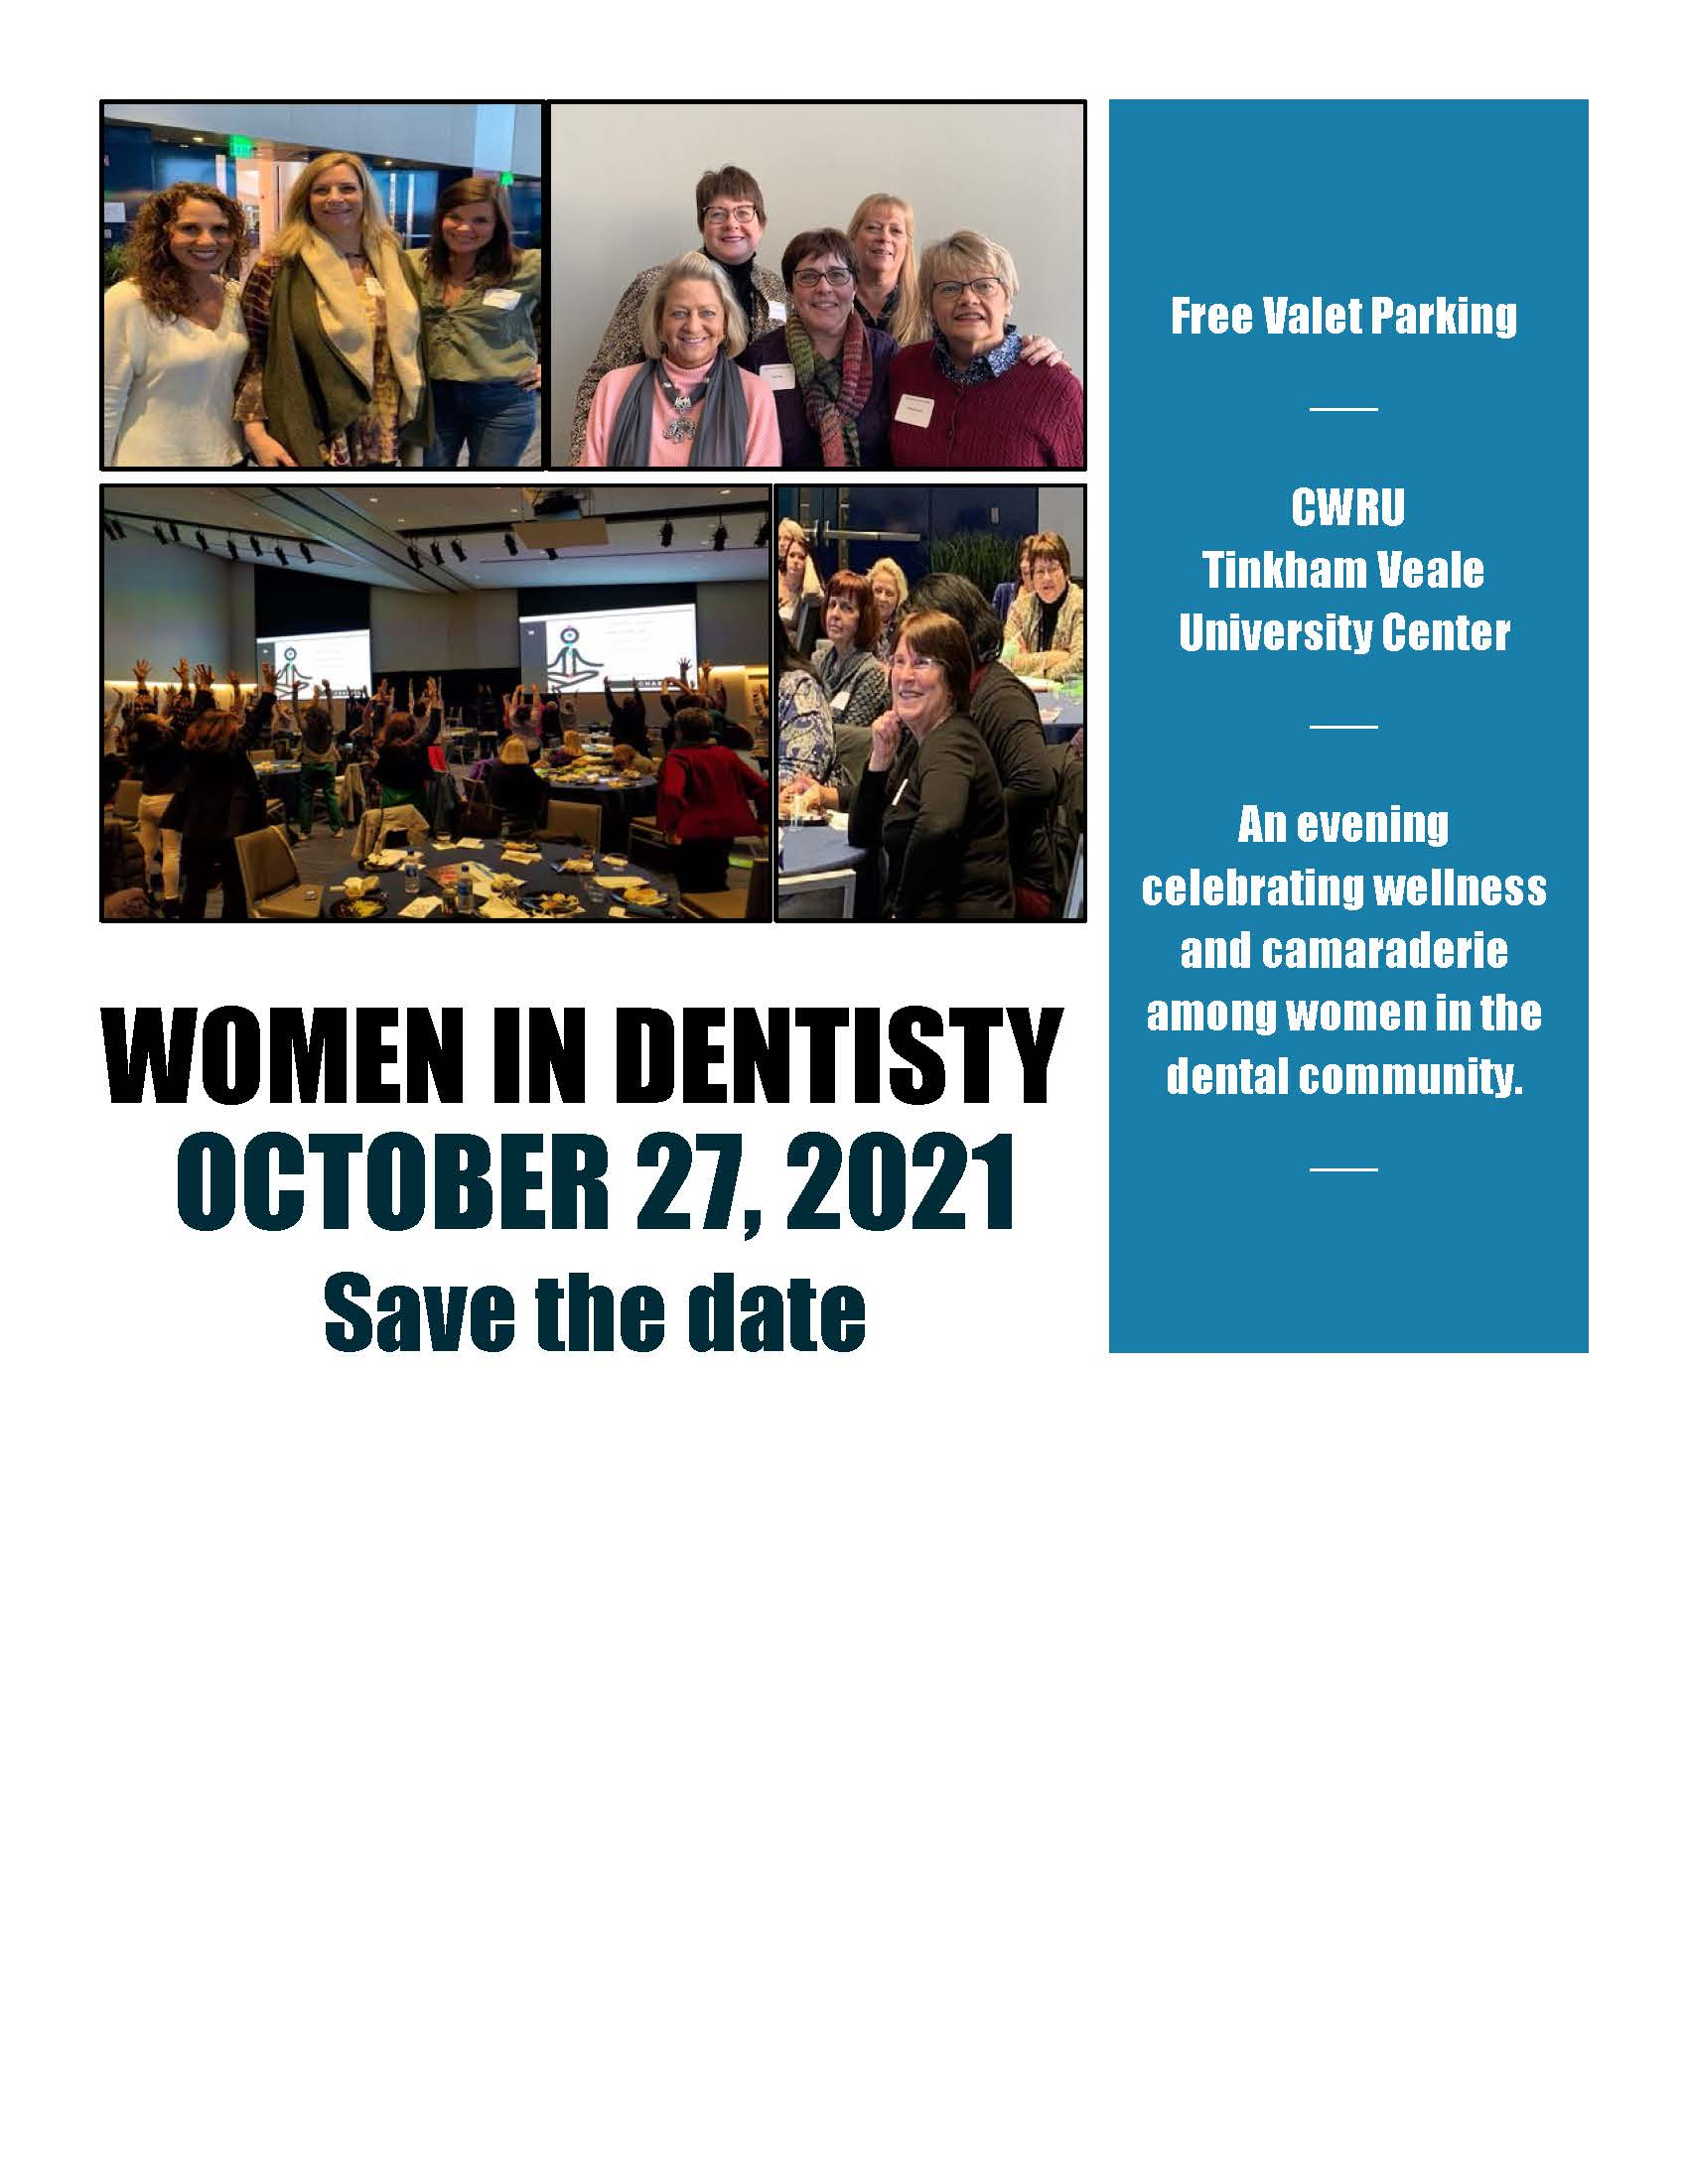 Women in Dentistry 2021 Save the Date